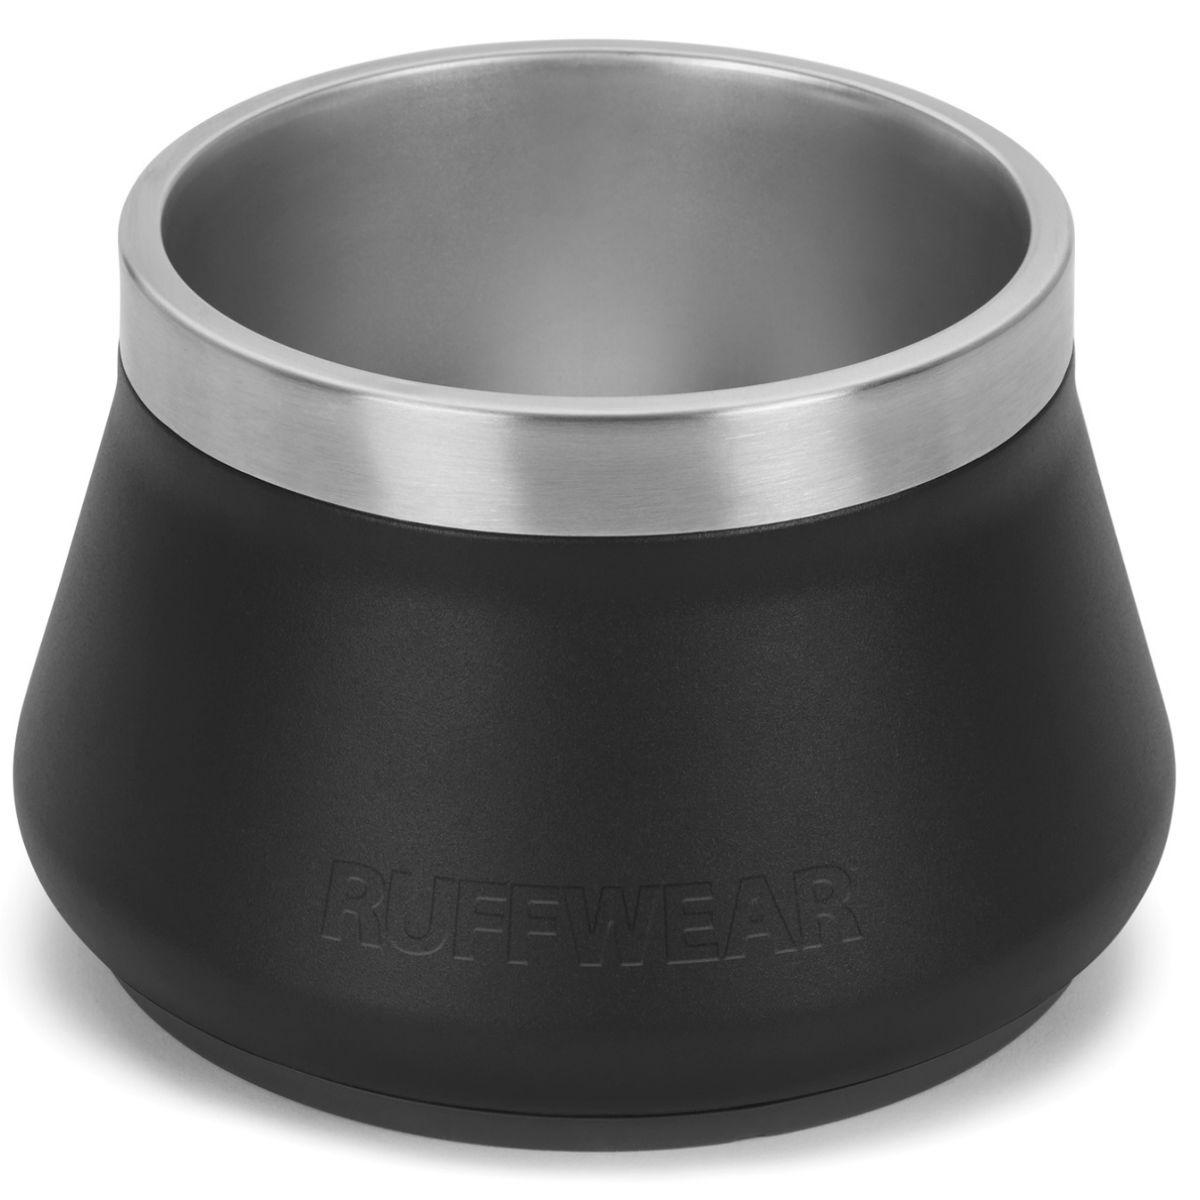 Basecamp Dog Bowl by Ruffwear - Obsidian Black